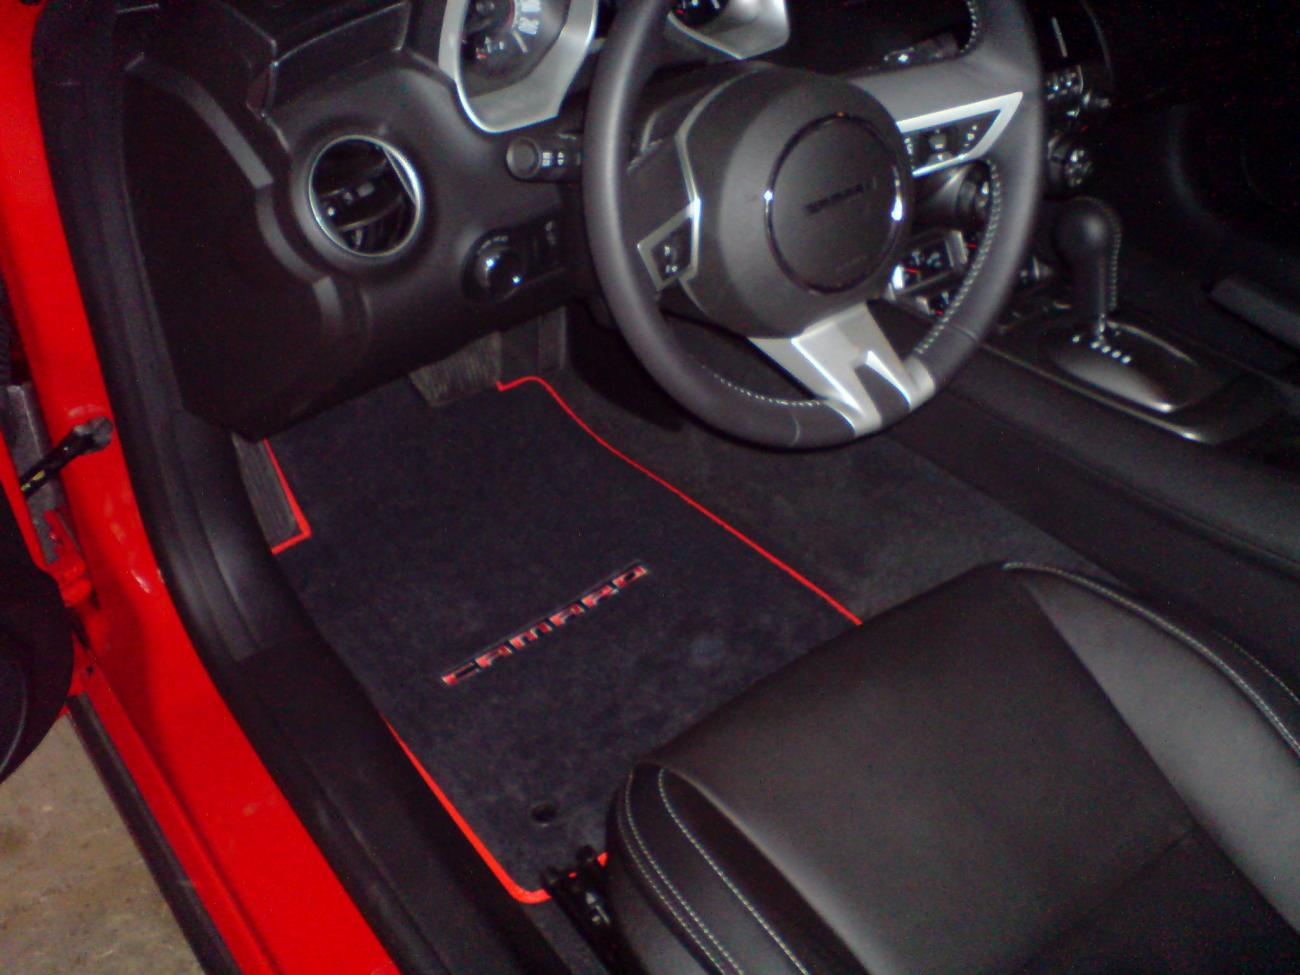 Floor mats edmonton - This Image Has Been Resized Click This Bar To View The Full Image The Original Image Is Sized 1300x975